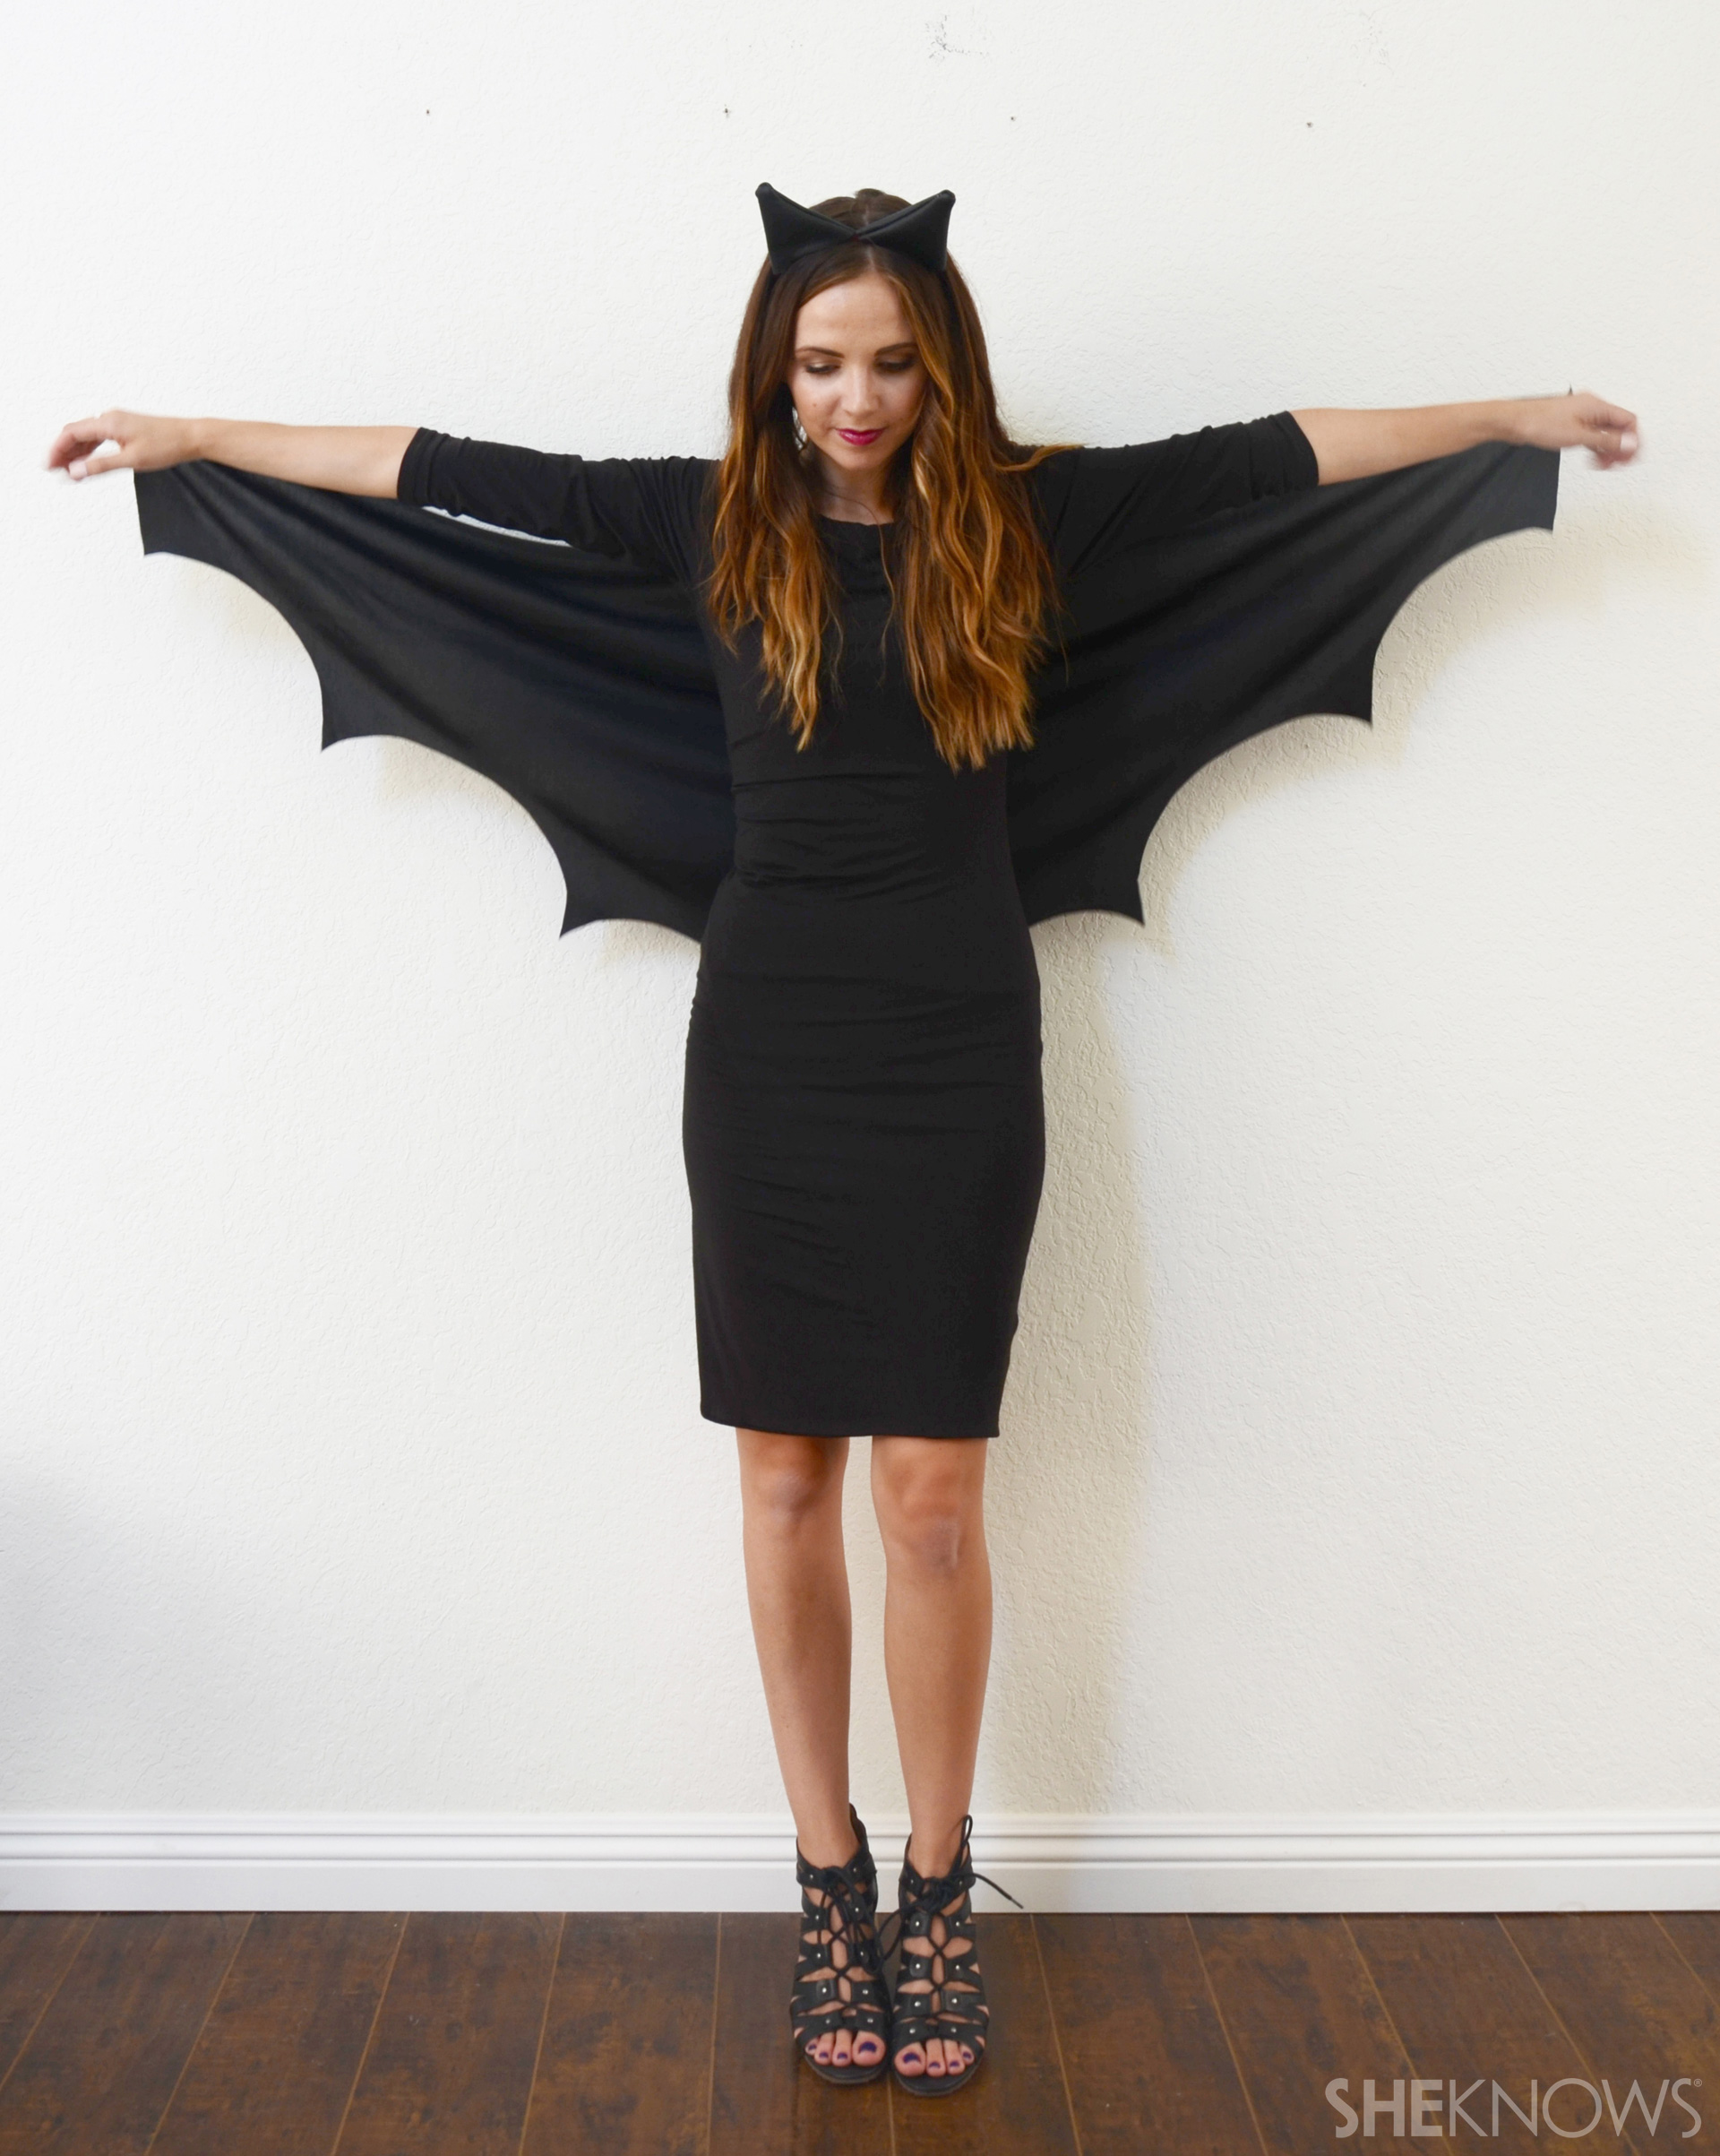 A Diy Bat Costume So Easy No One Will Know It Only Took 10 Minutes